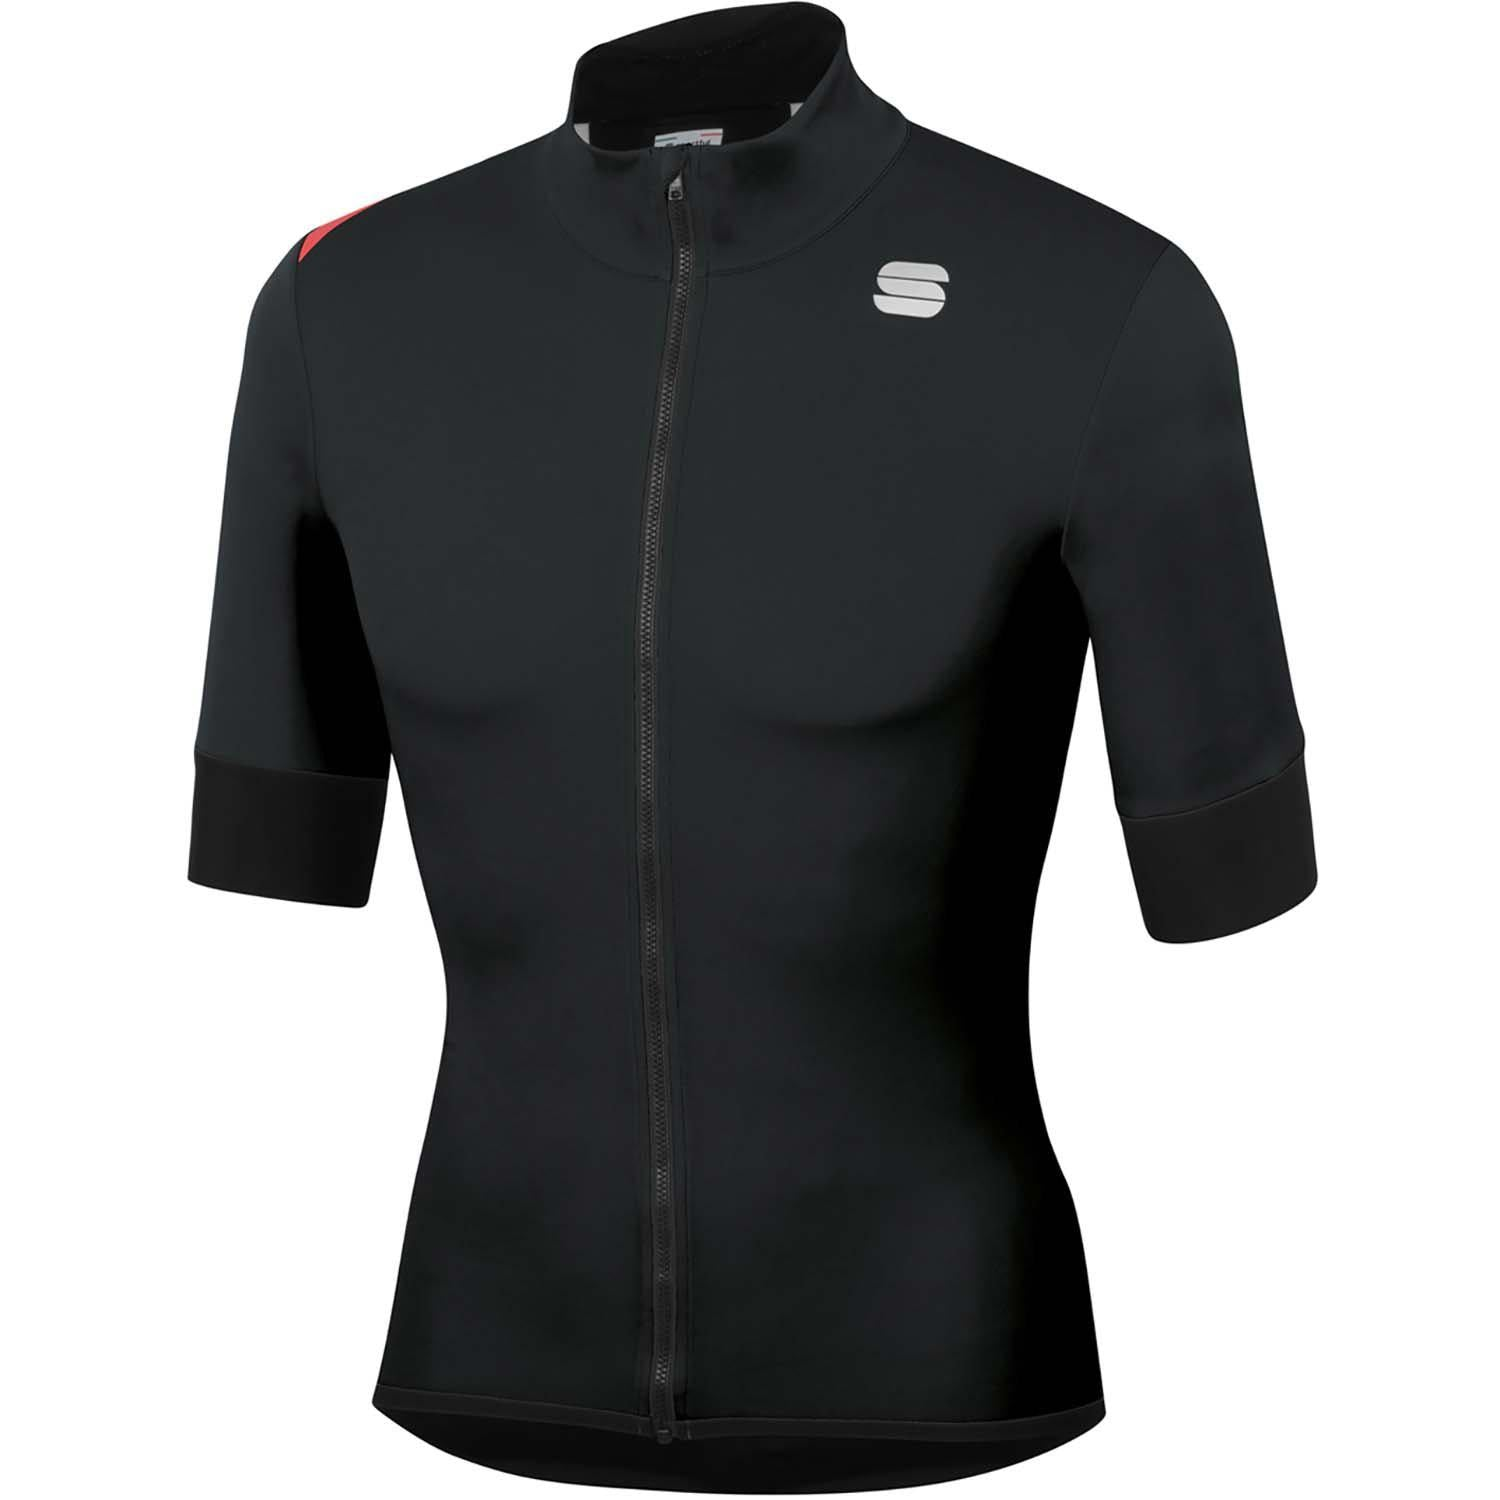 Sportful-Sportful Fiandre Light NoRain Short Sleeve Jacket-Black-S-SF200220022-saddleback-elite-performance-cycling